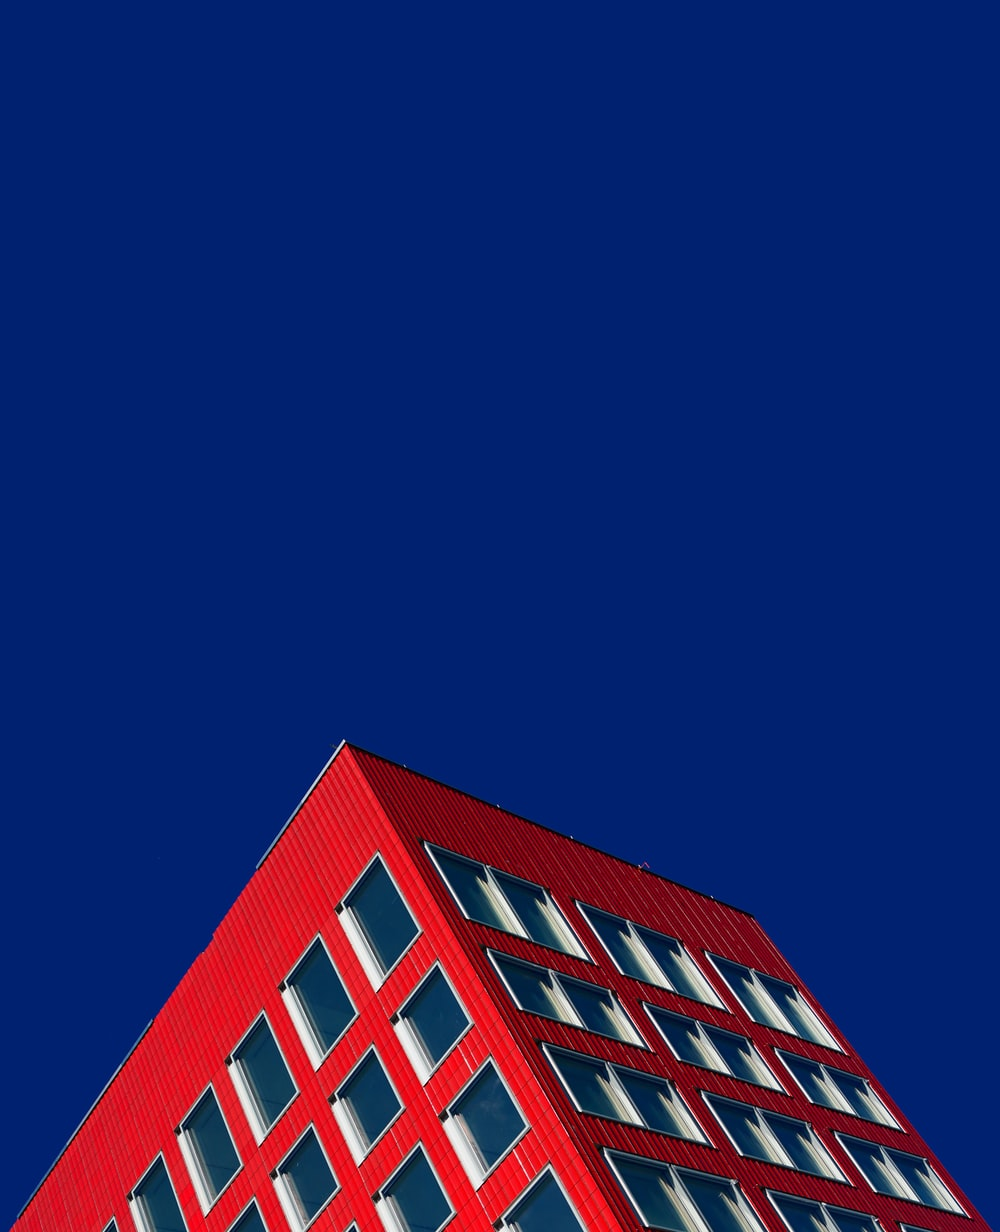 worm's eyeview of red building